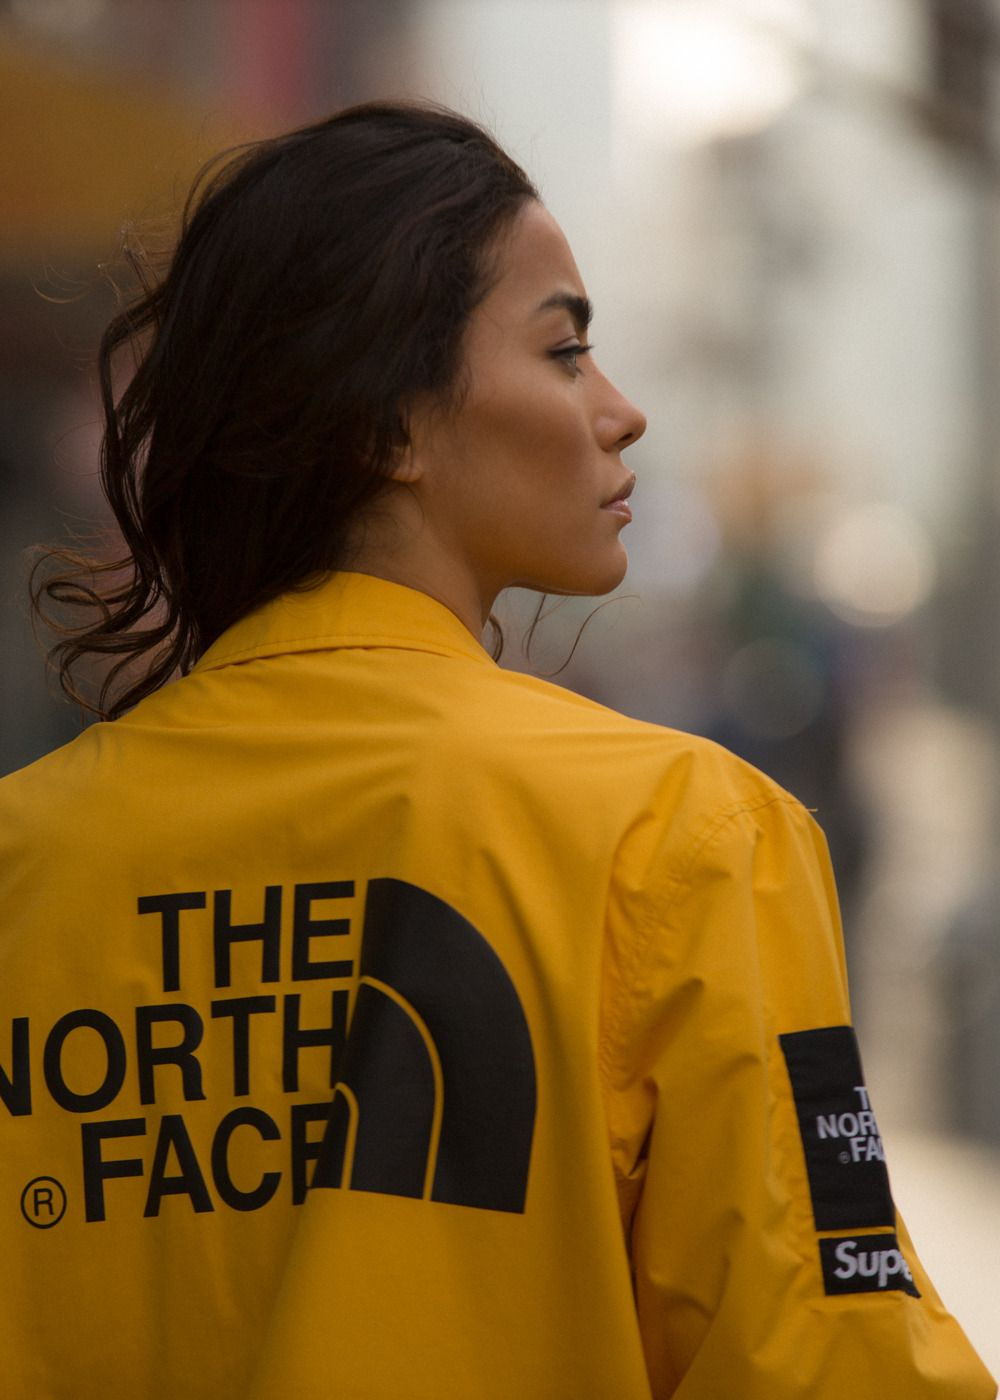 Jerald 25 Philippines Denmark Girl Street Fashion North Face Outfits The North Face [ 1400 x 1000 Pixel ]